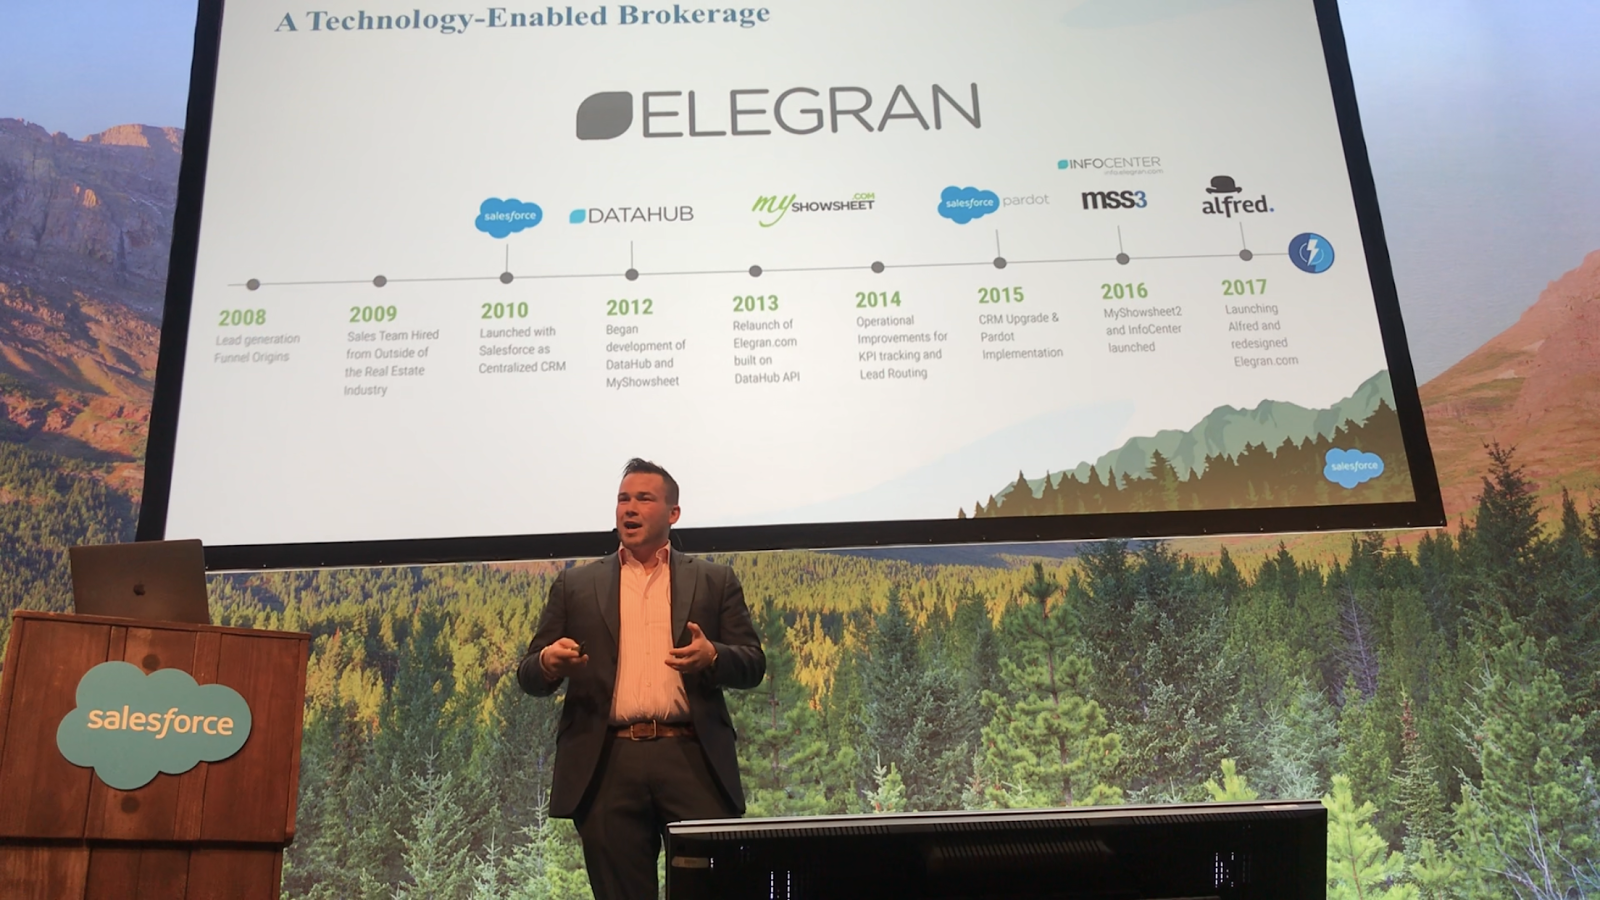 Tigh Loughhead presenting tech enabled real estate brokerage Elegran at Dreamforce: Leverage Lightning to Drive User Adoption